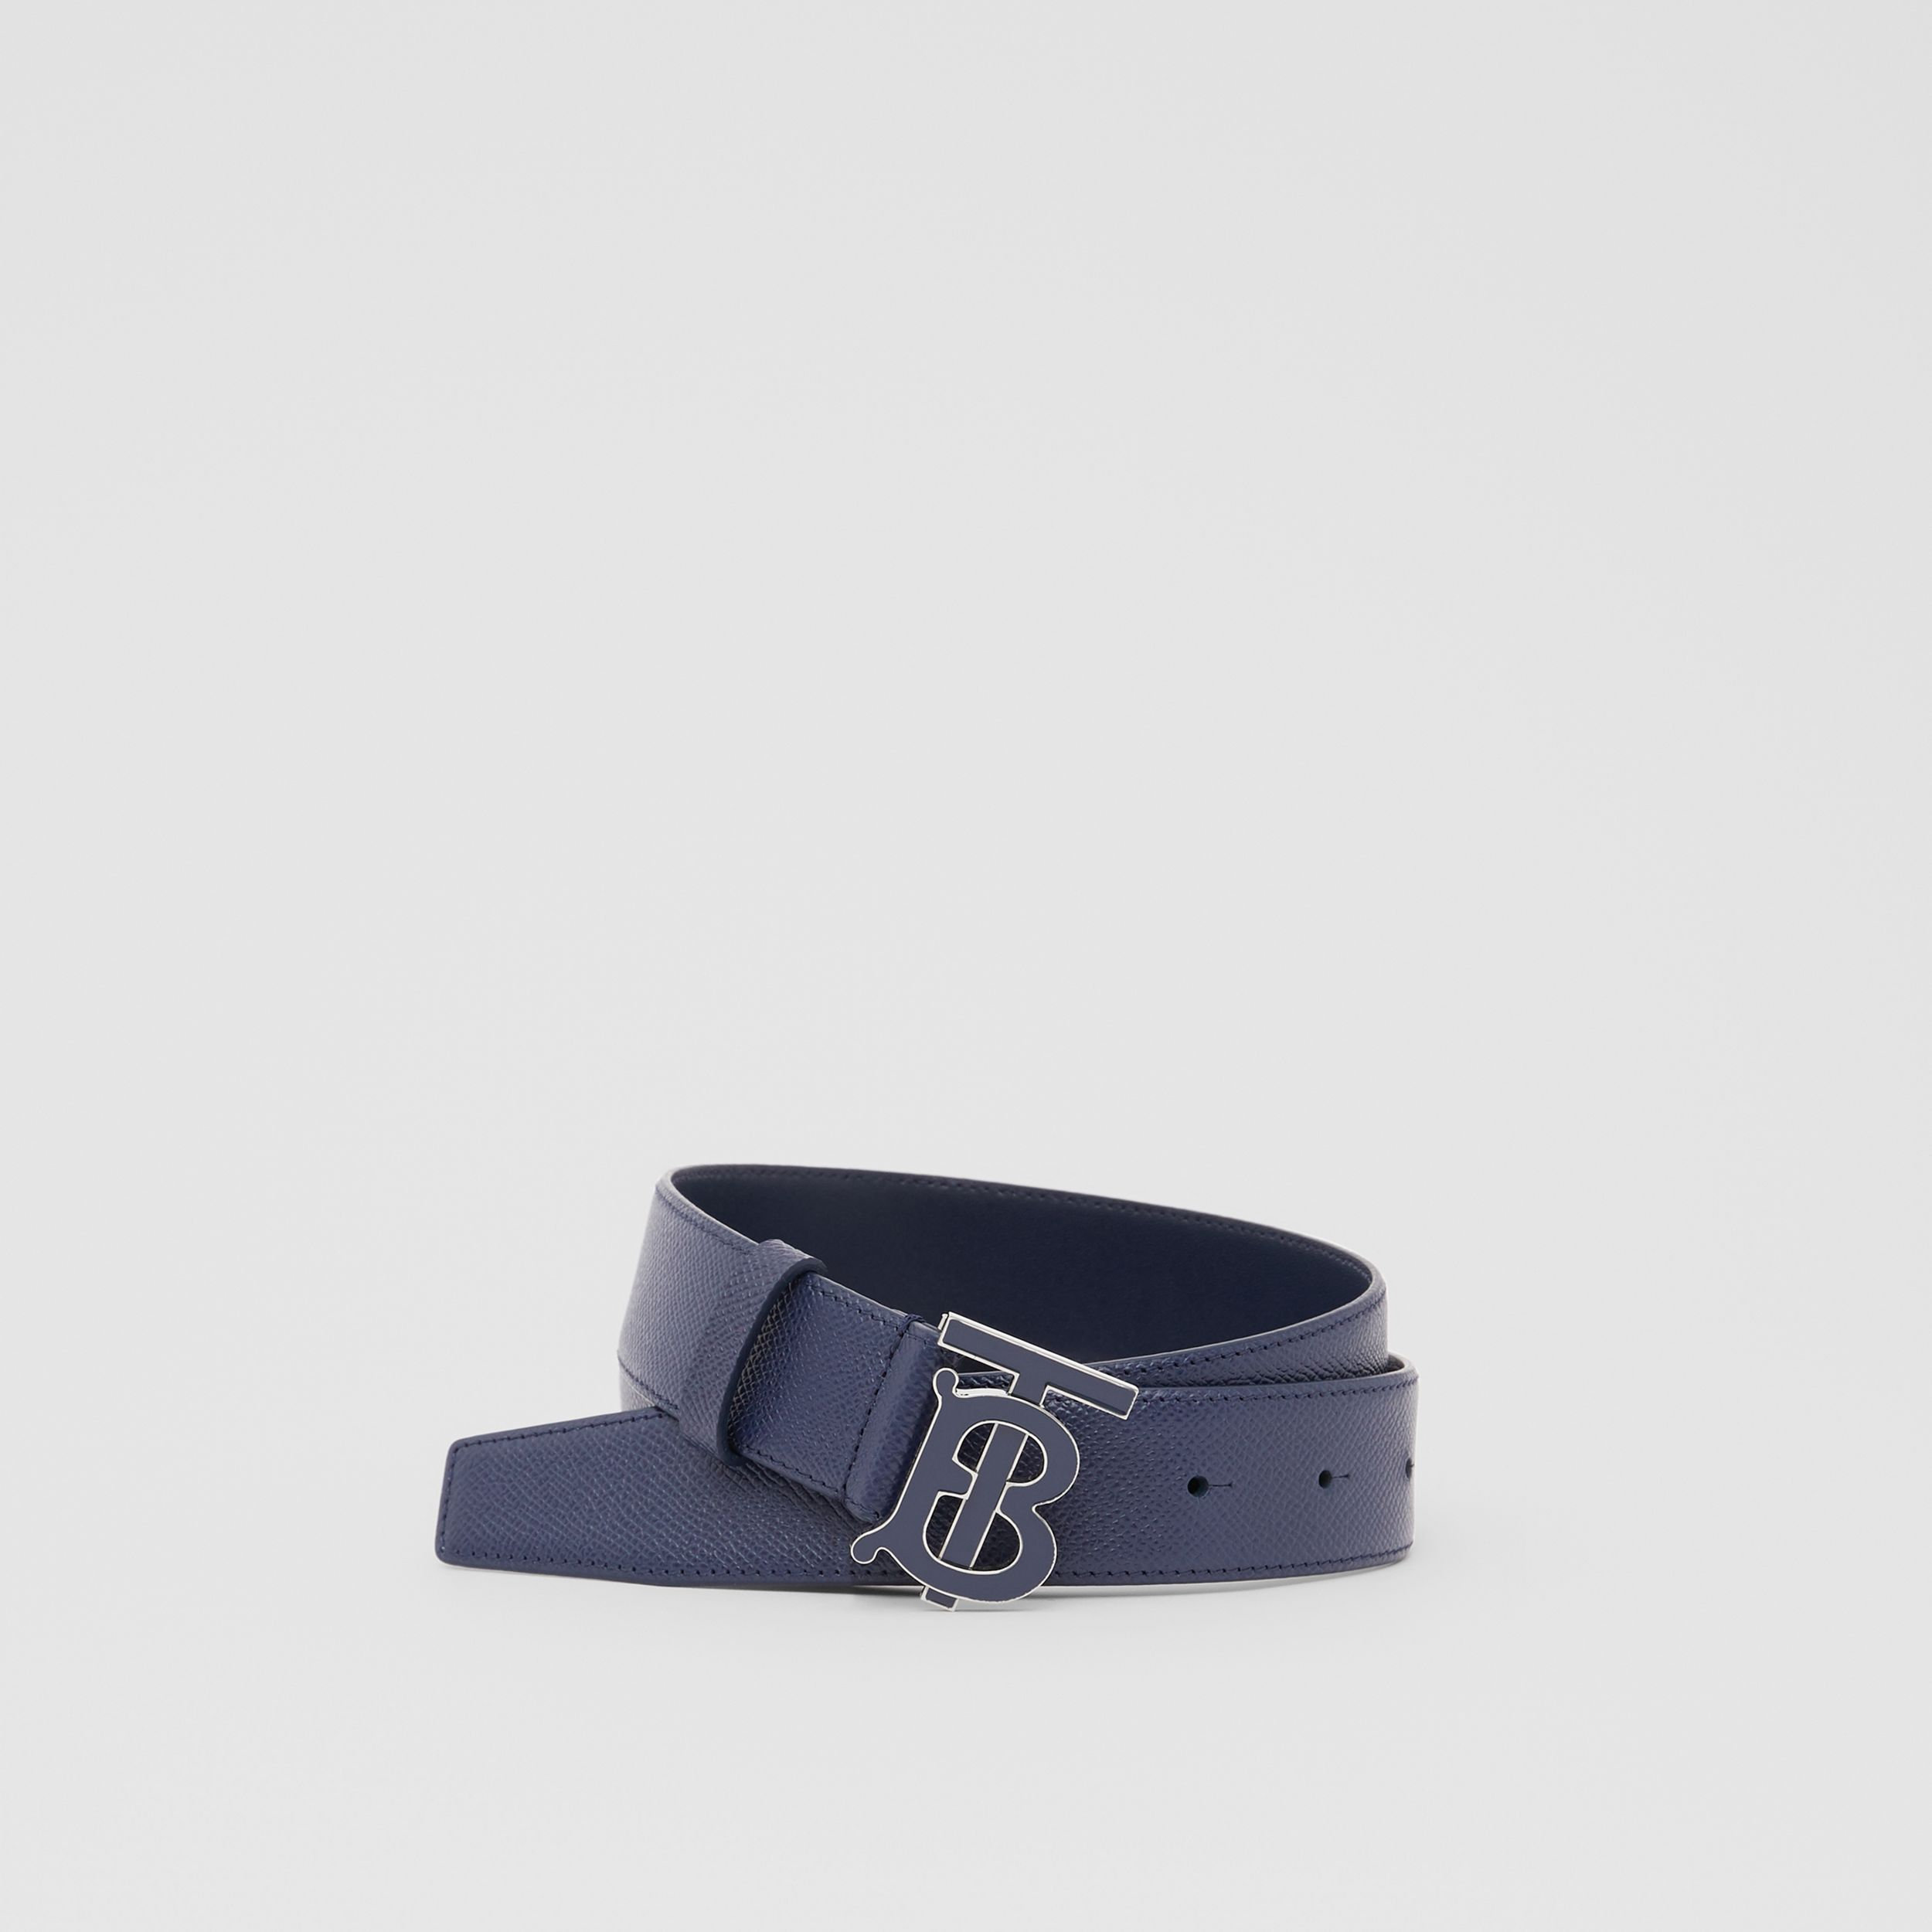 Monogram Motif Grainy Leather Belt in Navy - Men | Burberry - 1